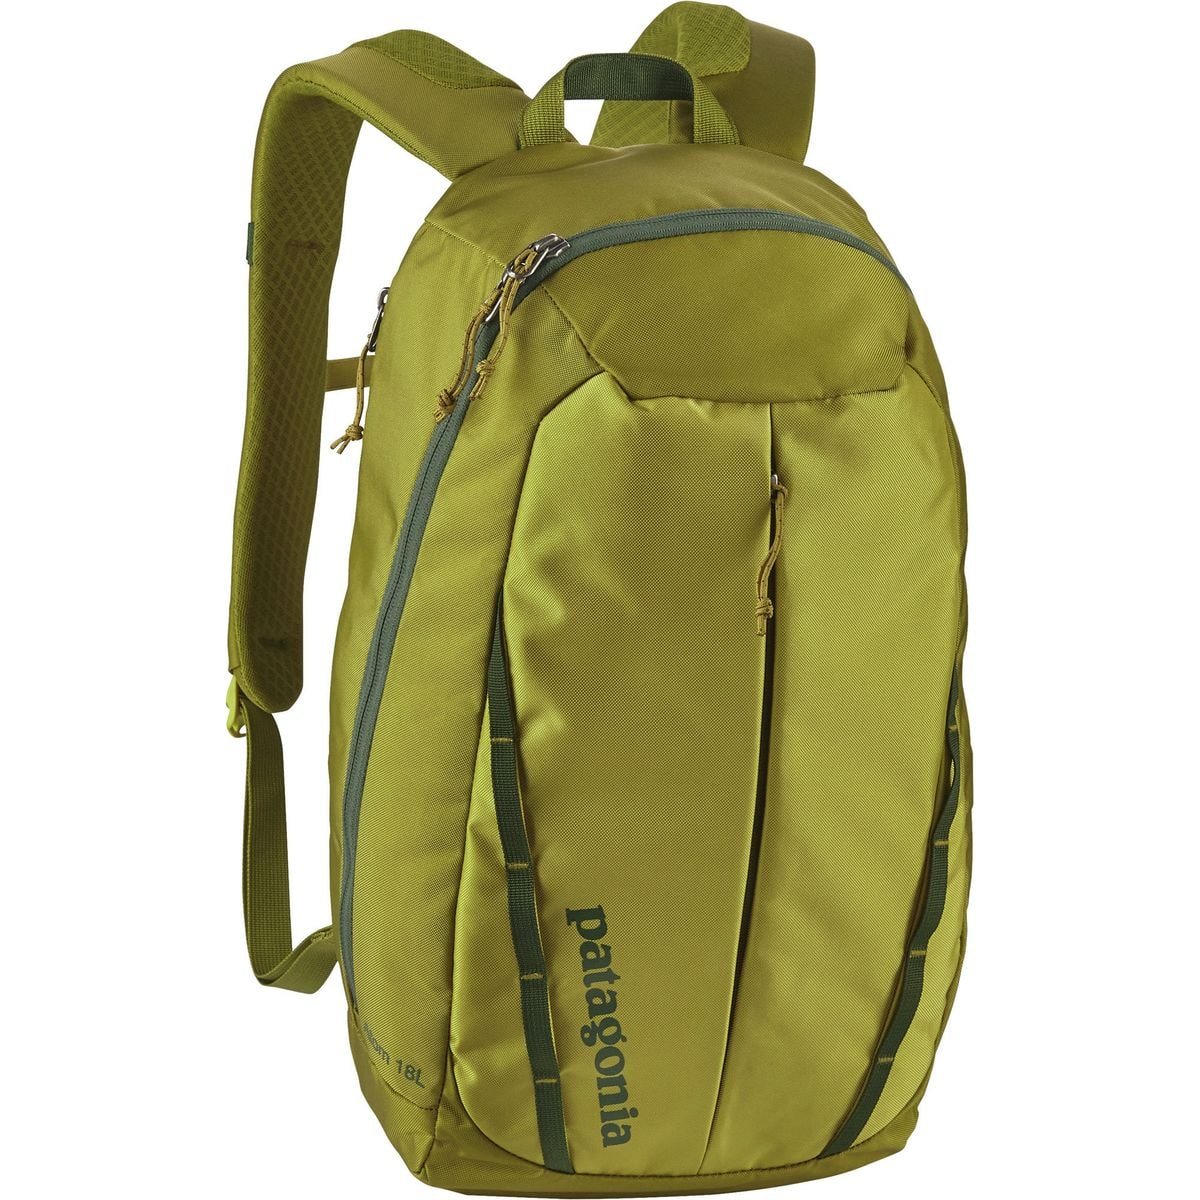 Patagonia via Backcountry - 50% Off Atom 18L Backpack (Golden Jungle) $39.50